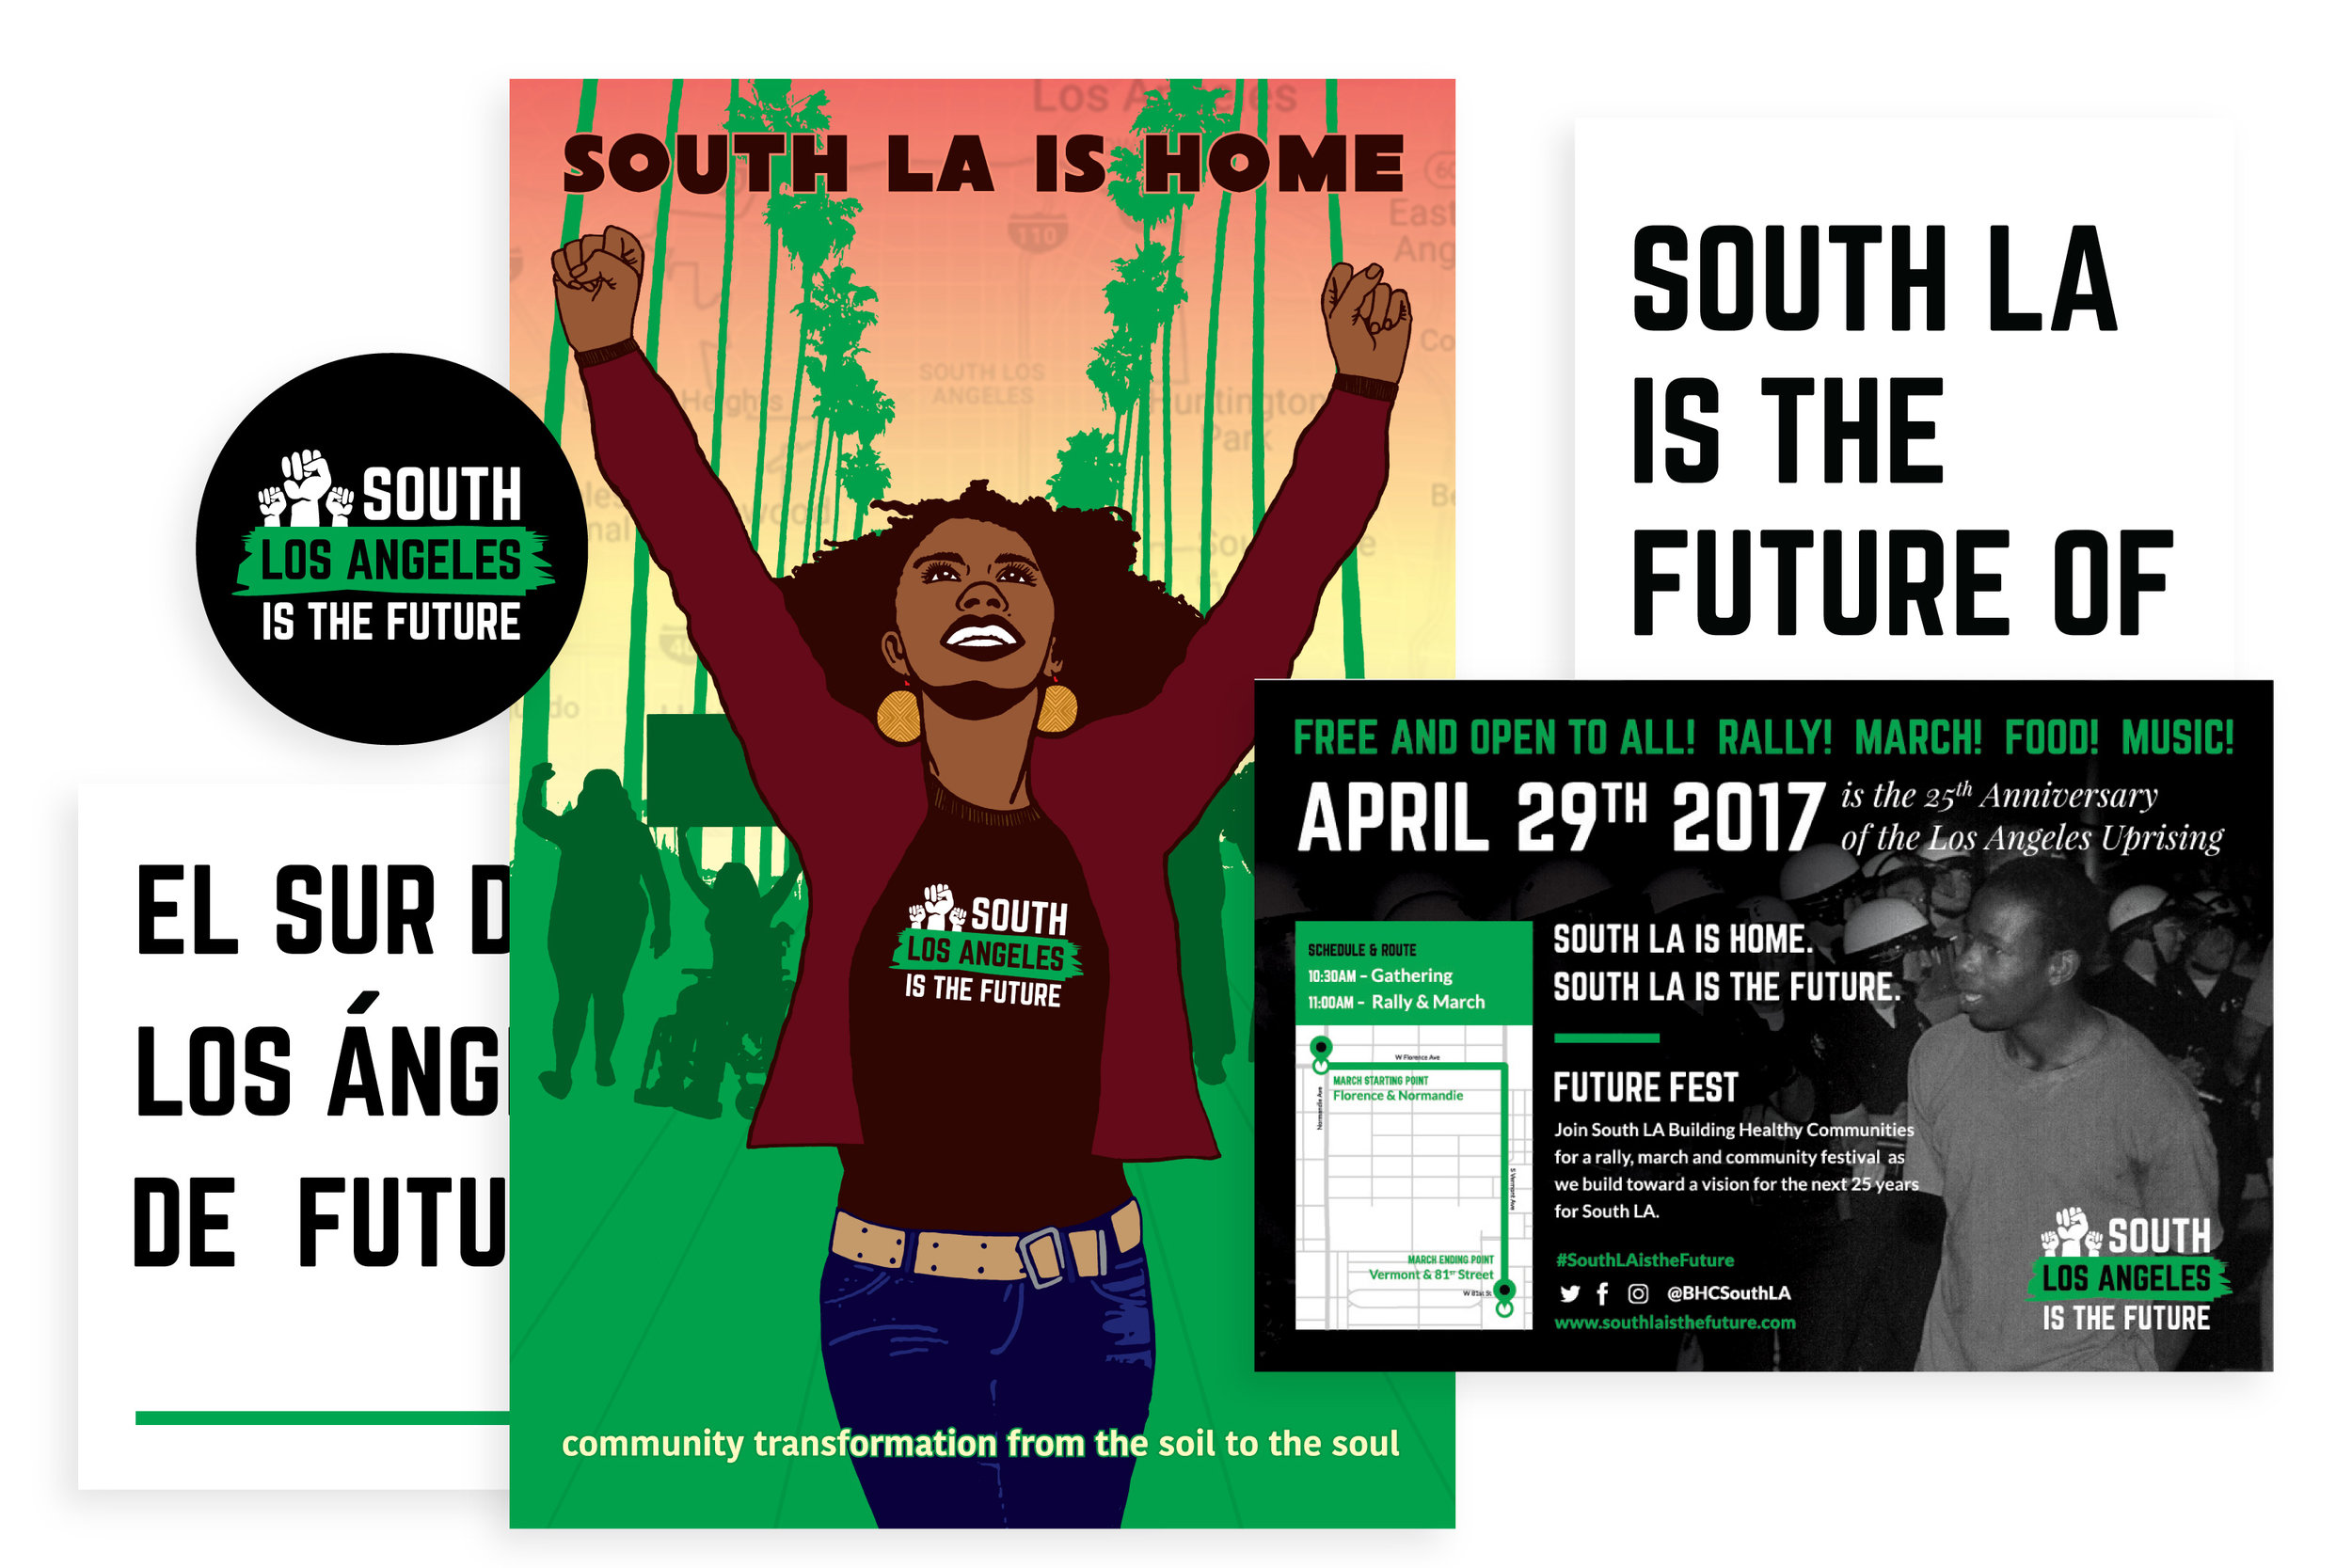 tf-bhc-southla-is-the-future_p2_e aye.jpg